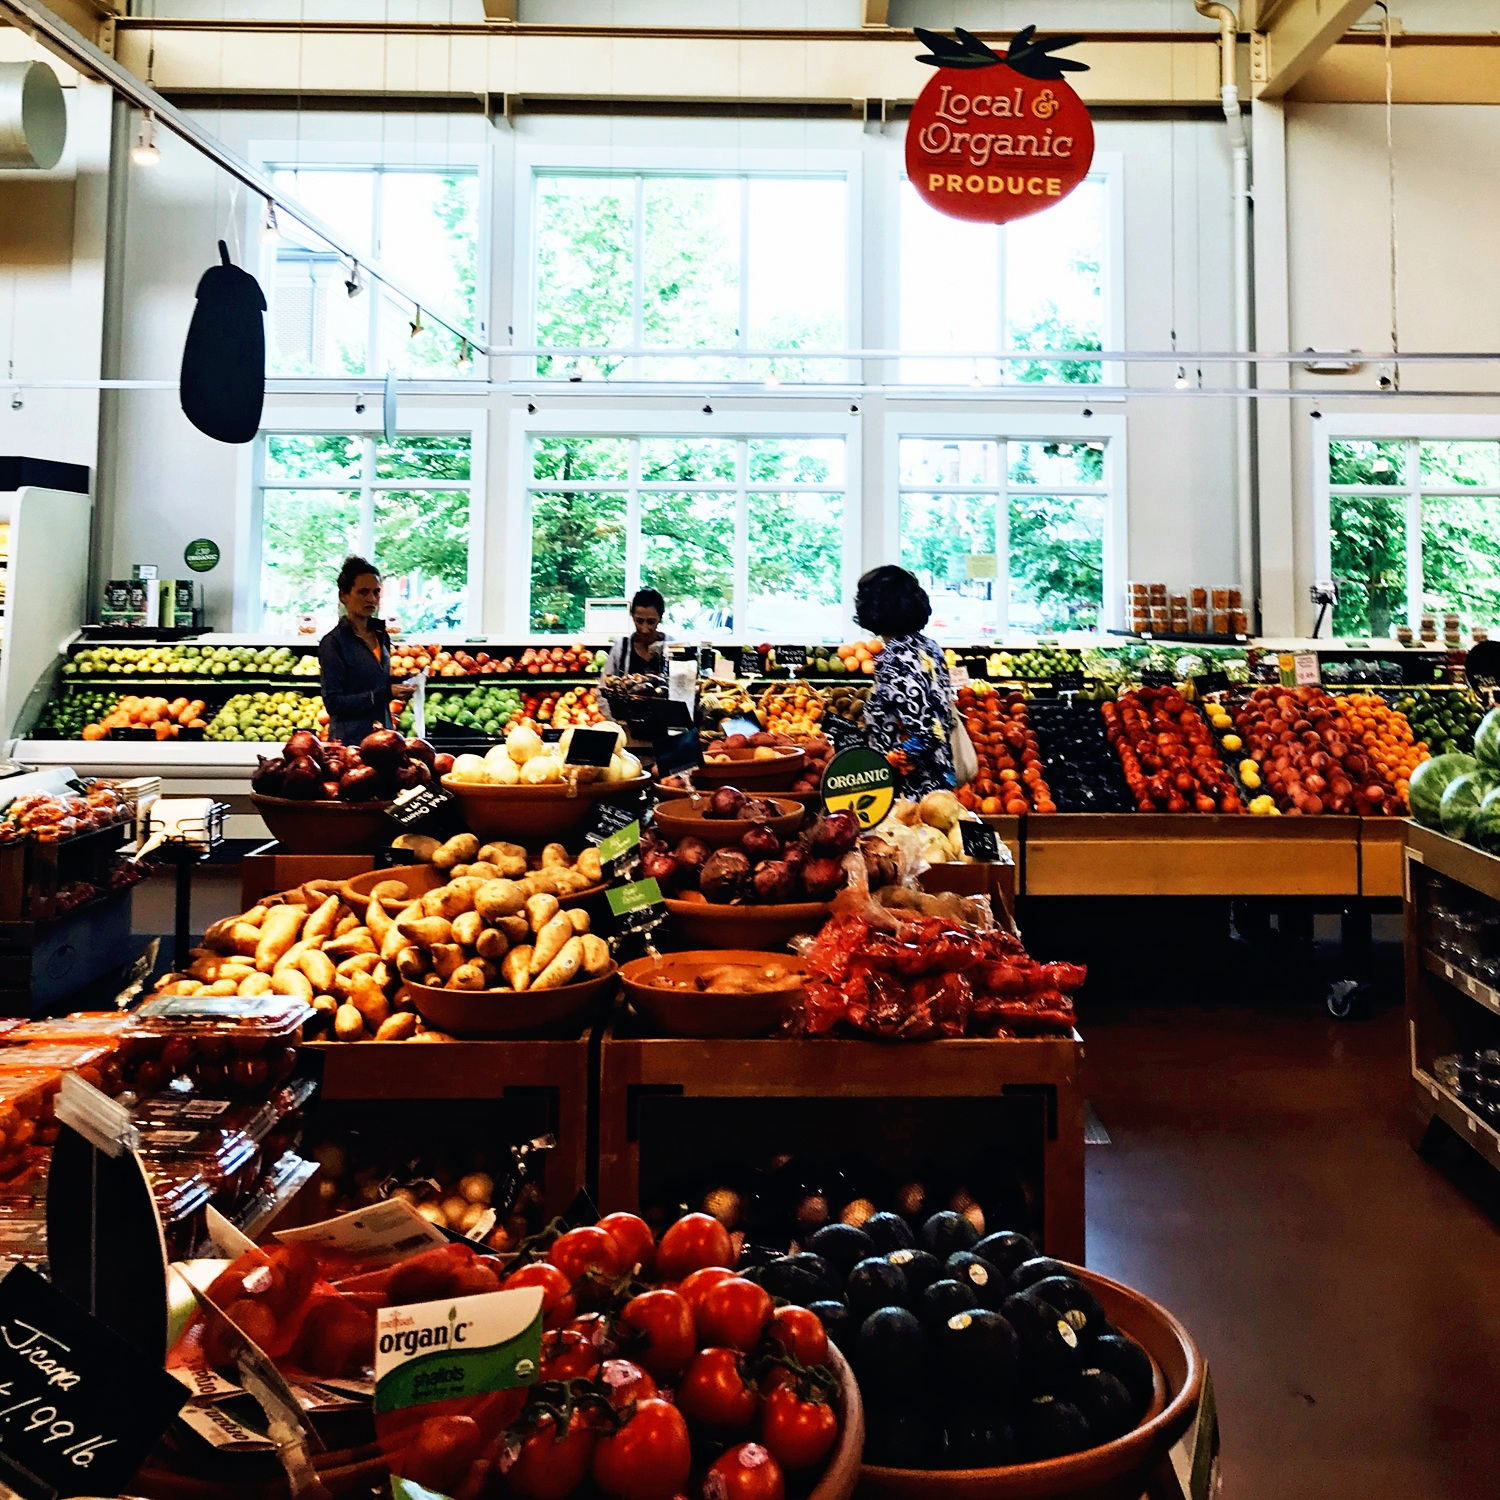 3-ways-to-spend-less-time-shopping-grocery-store.jpg